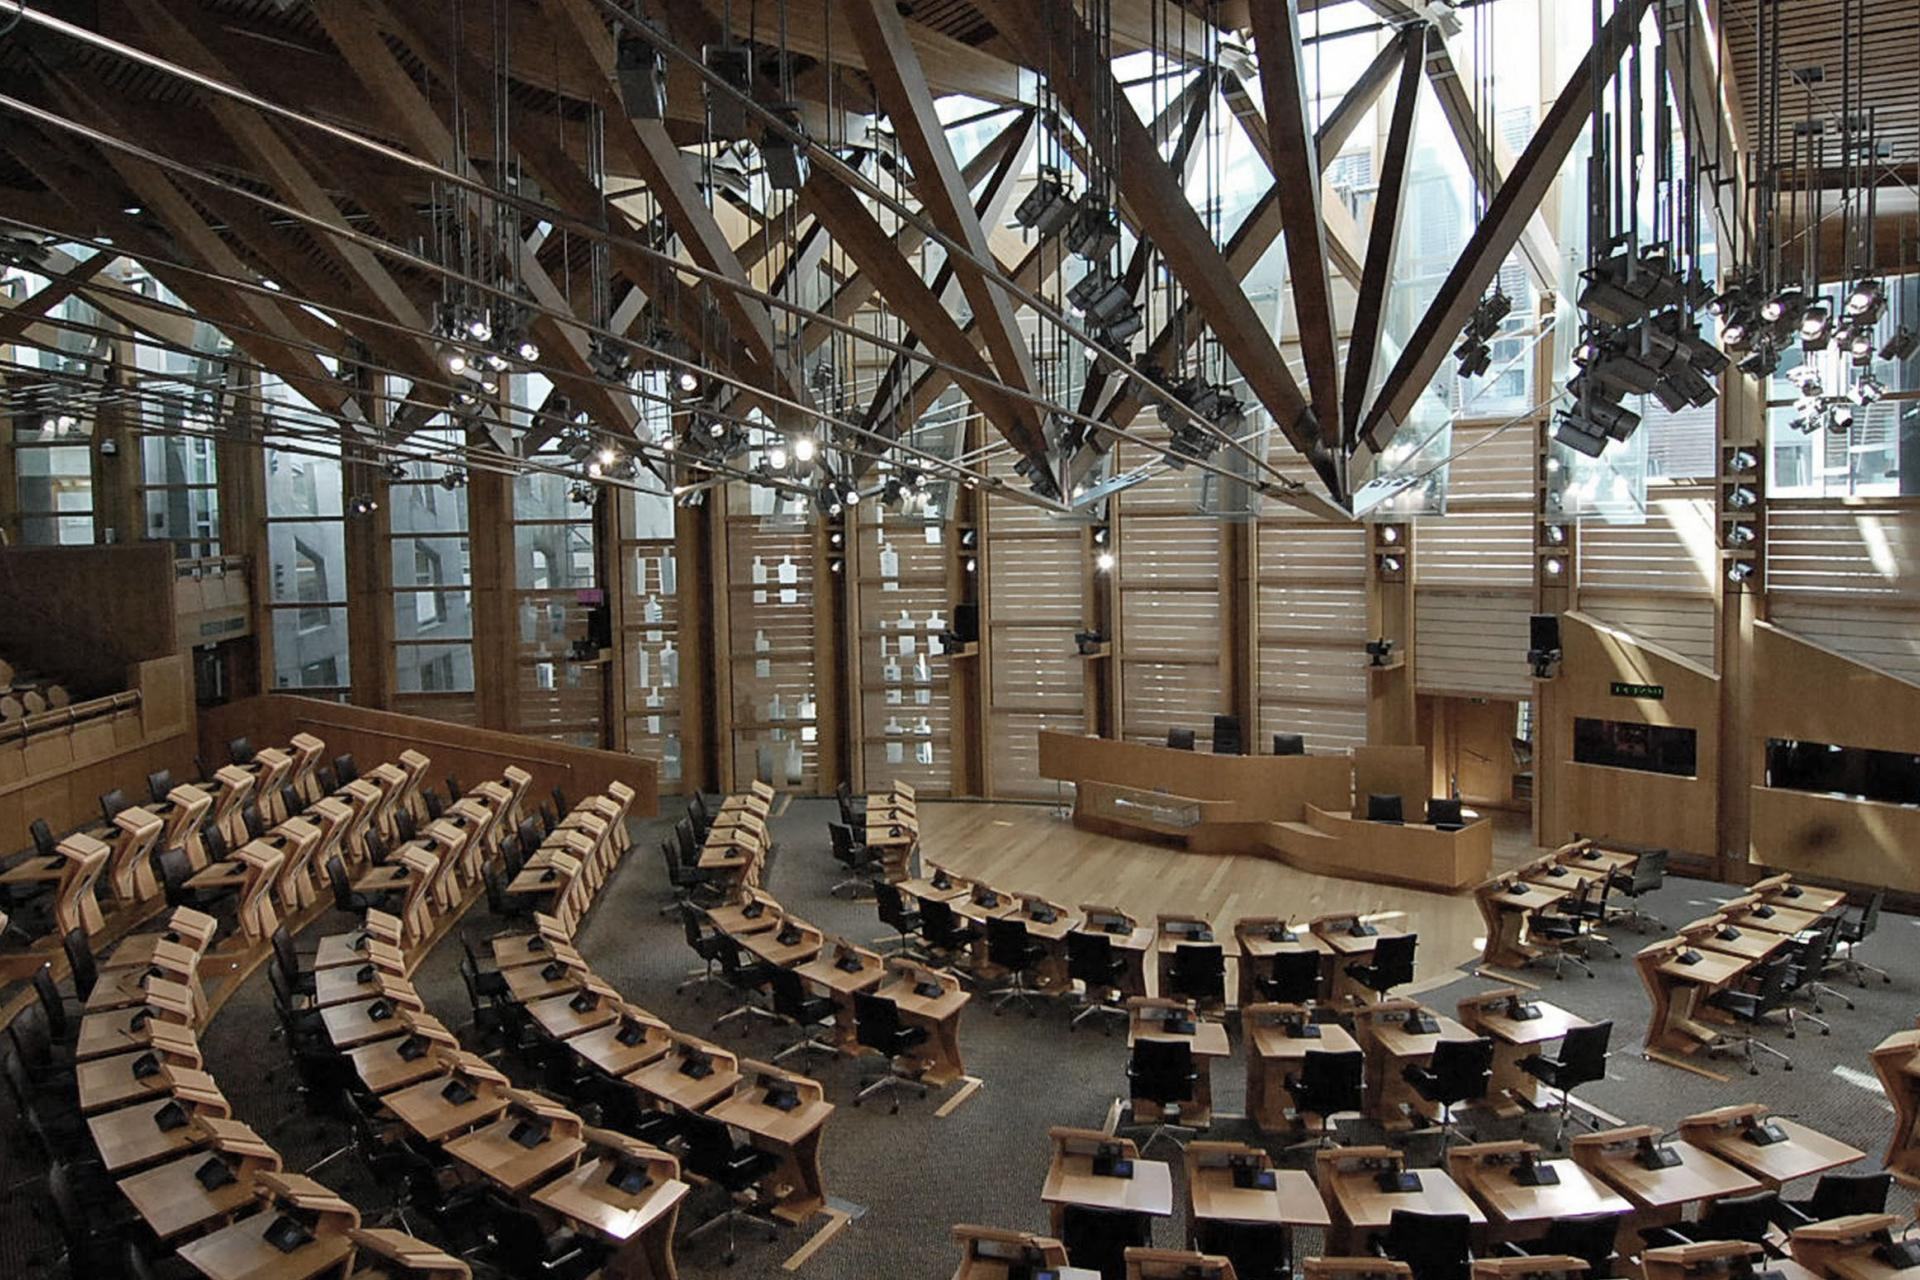 Scottish Parliament chambers